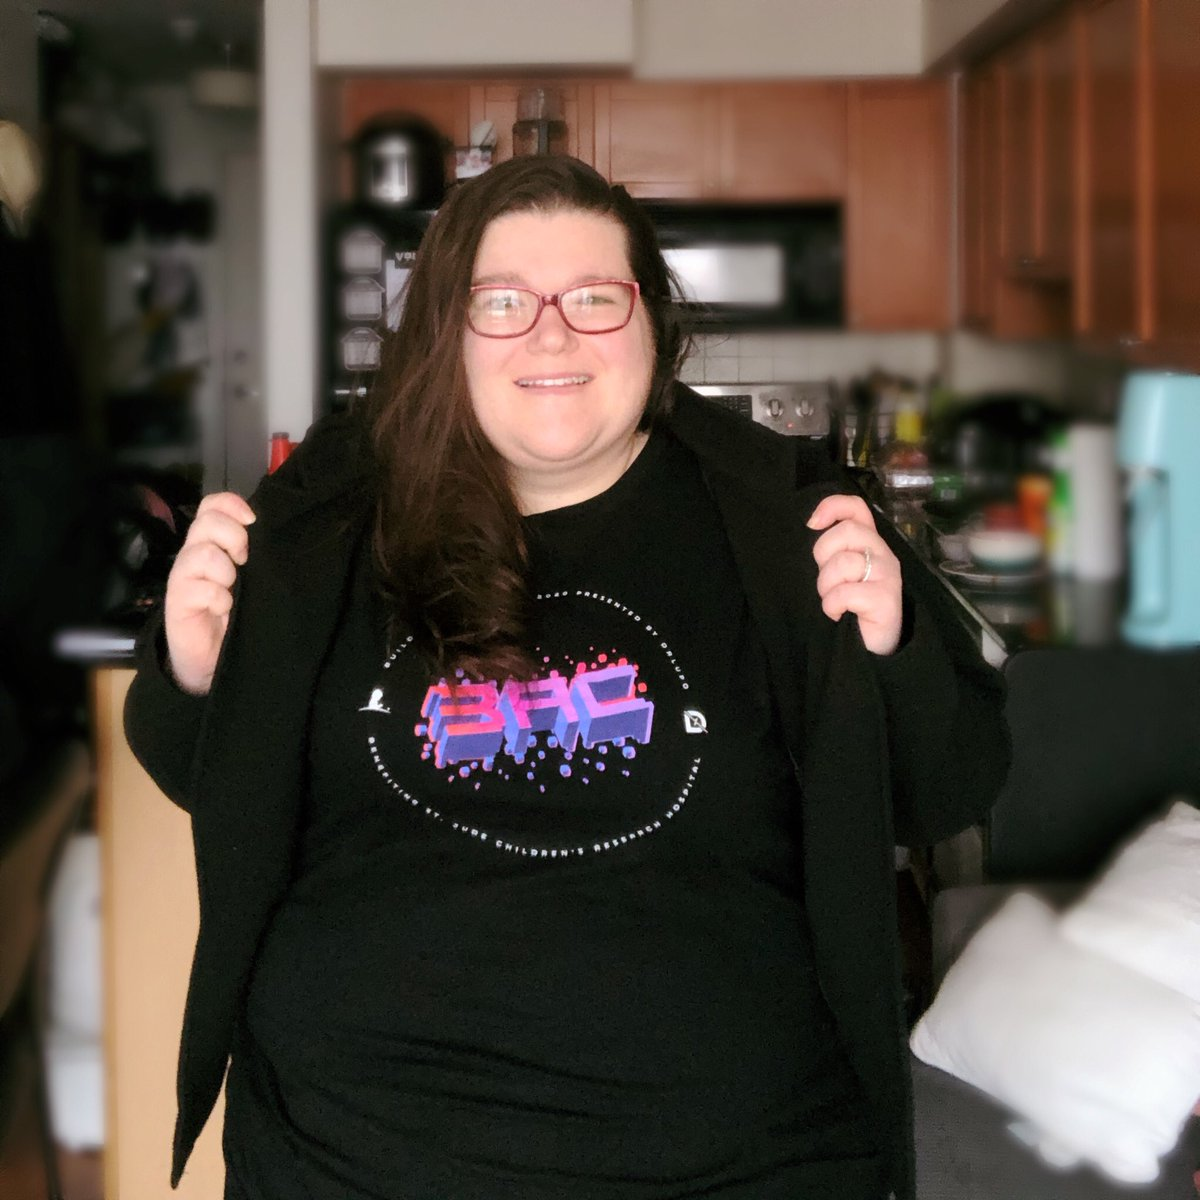 Happy Monday! Let's go out and crush this week and reach for our goals!   I thought I would model my new shirt that @drlupo released for @stjude and its amazing colours. (A gift from my husband)   #drlupo #stjude #plusppl #plussizemodel #bodypositivity #bodypositivitymodel